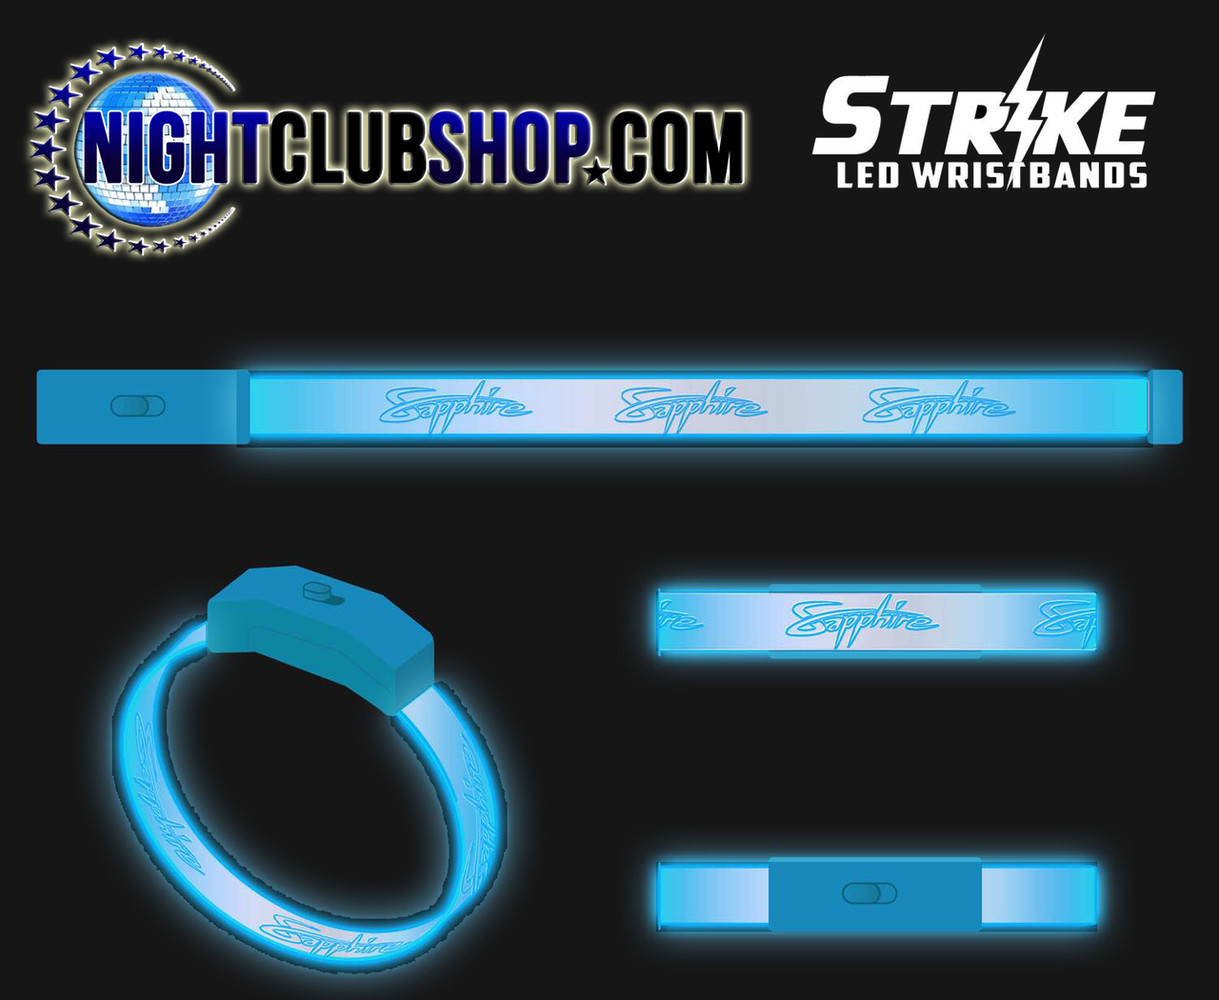 Personalized, Custom, Light up, illuminated, LED, wristband, bracelet, Bands, Name in Lights